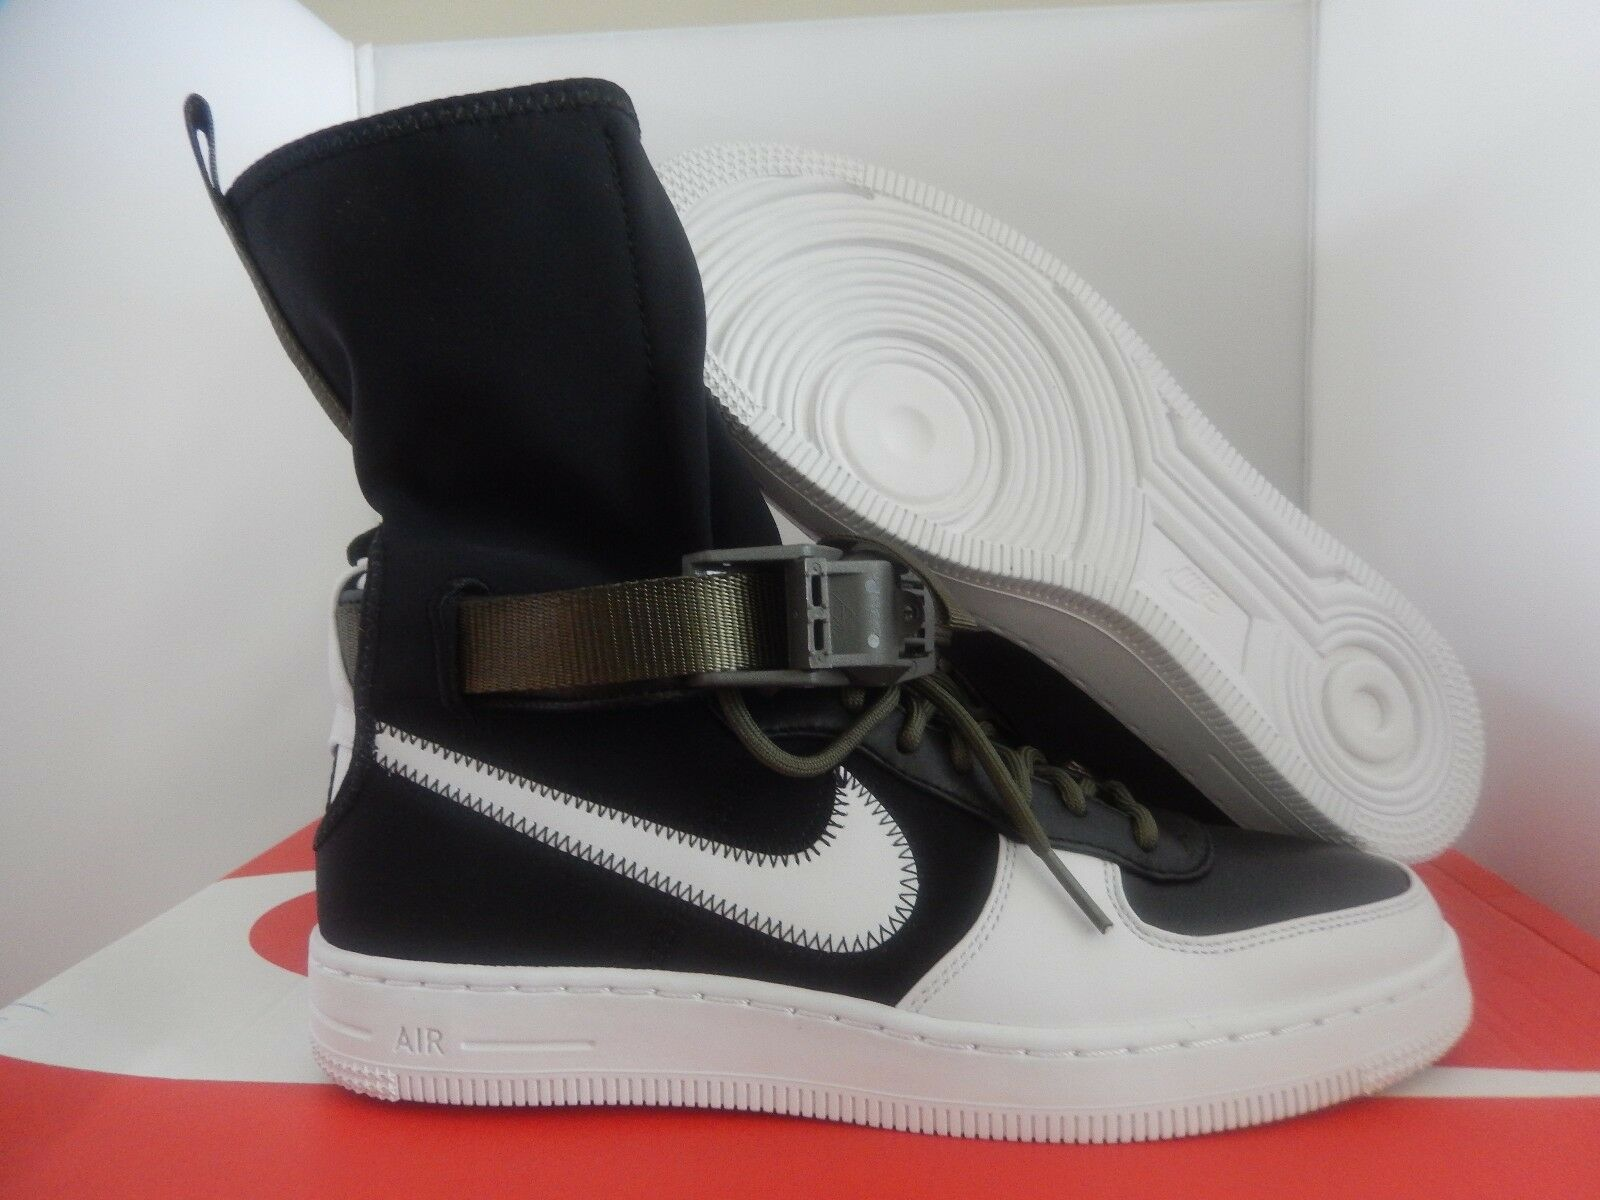 NIKE AIR FORCE 1 AF1 DOWNTOWN HI/SP ACRONYM SZ 14 RARE  [649941-001]